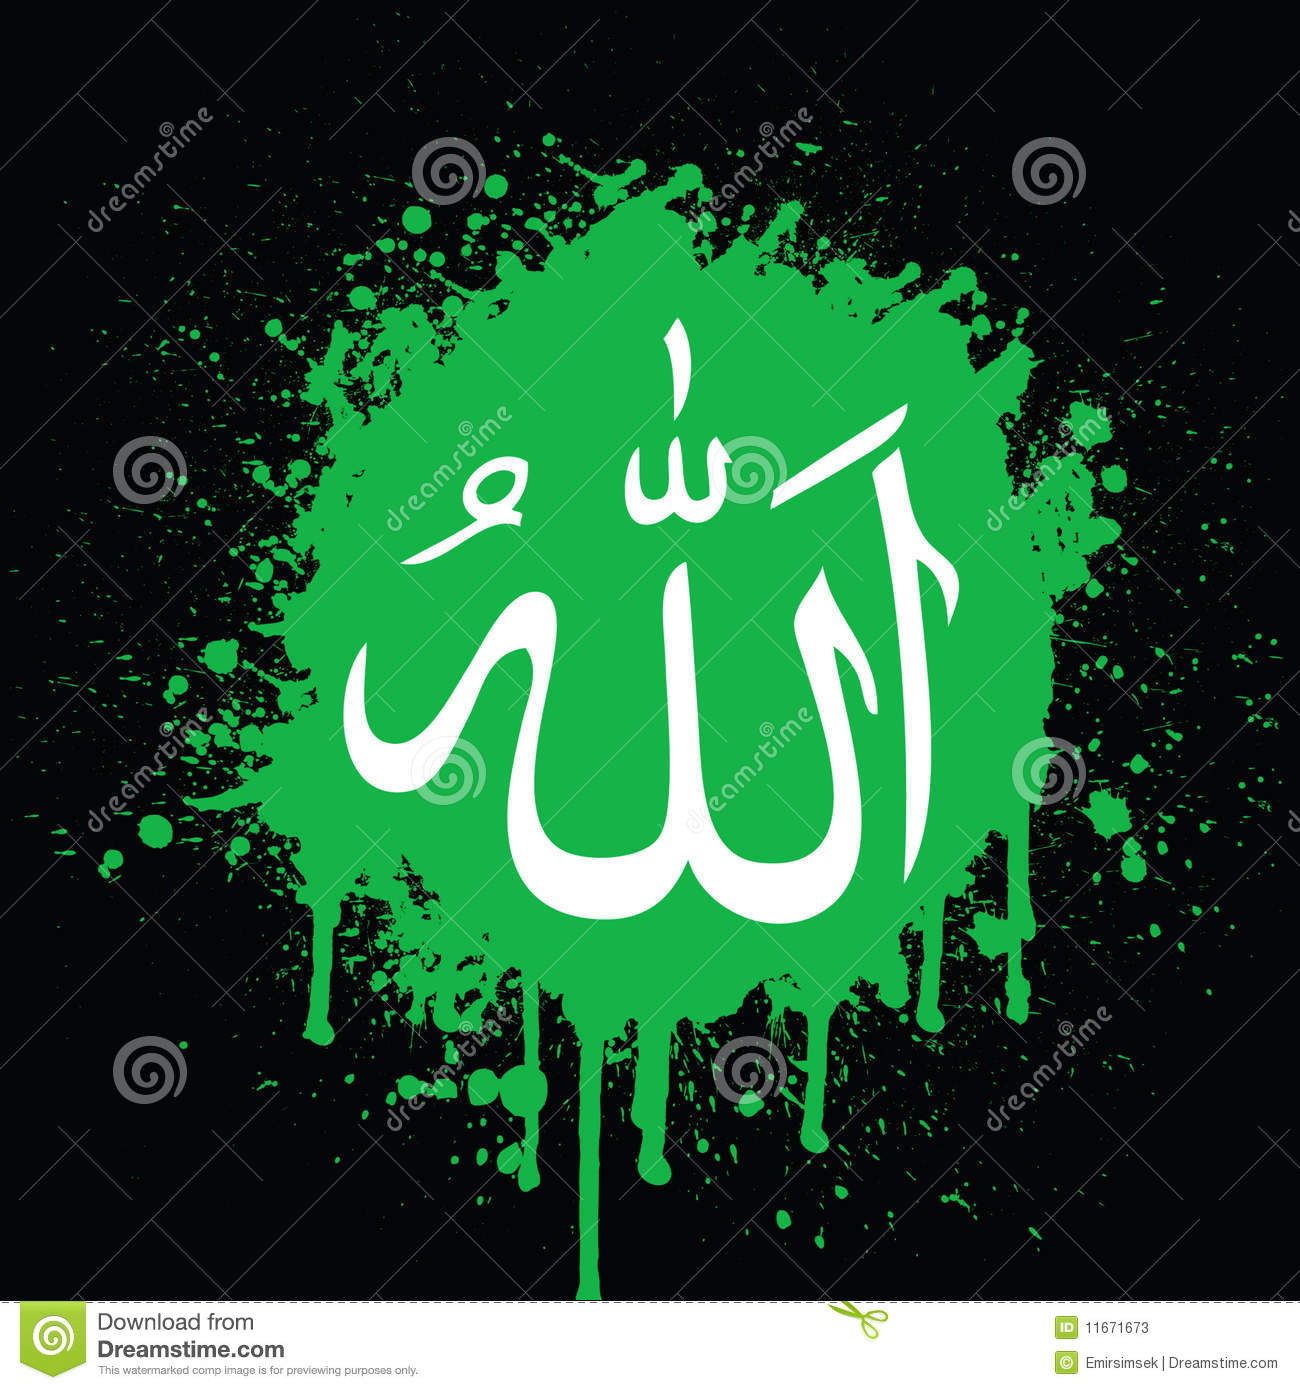 Name Of The God In Arabic Stock Photos - Image: 11671673